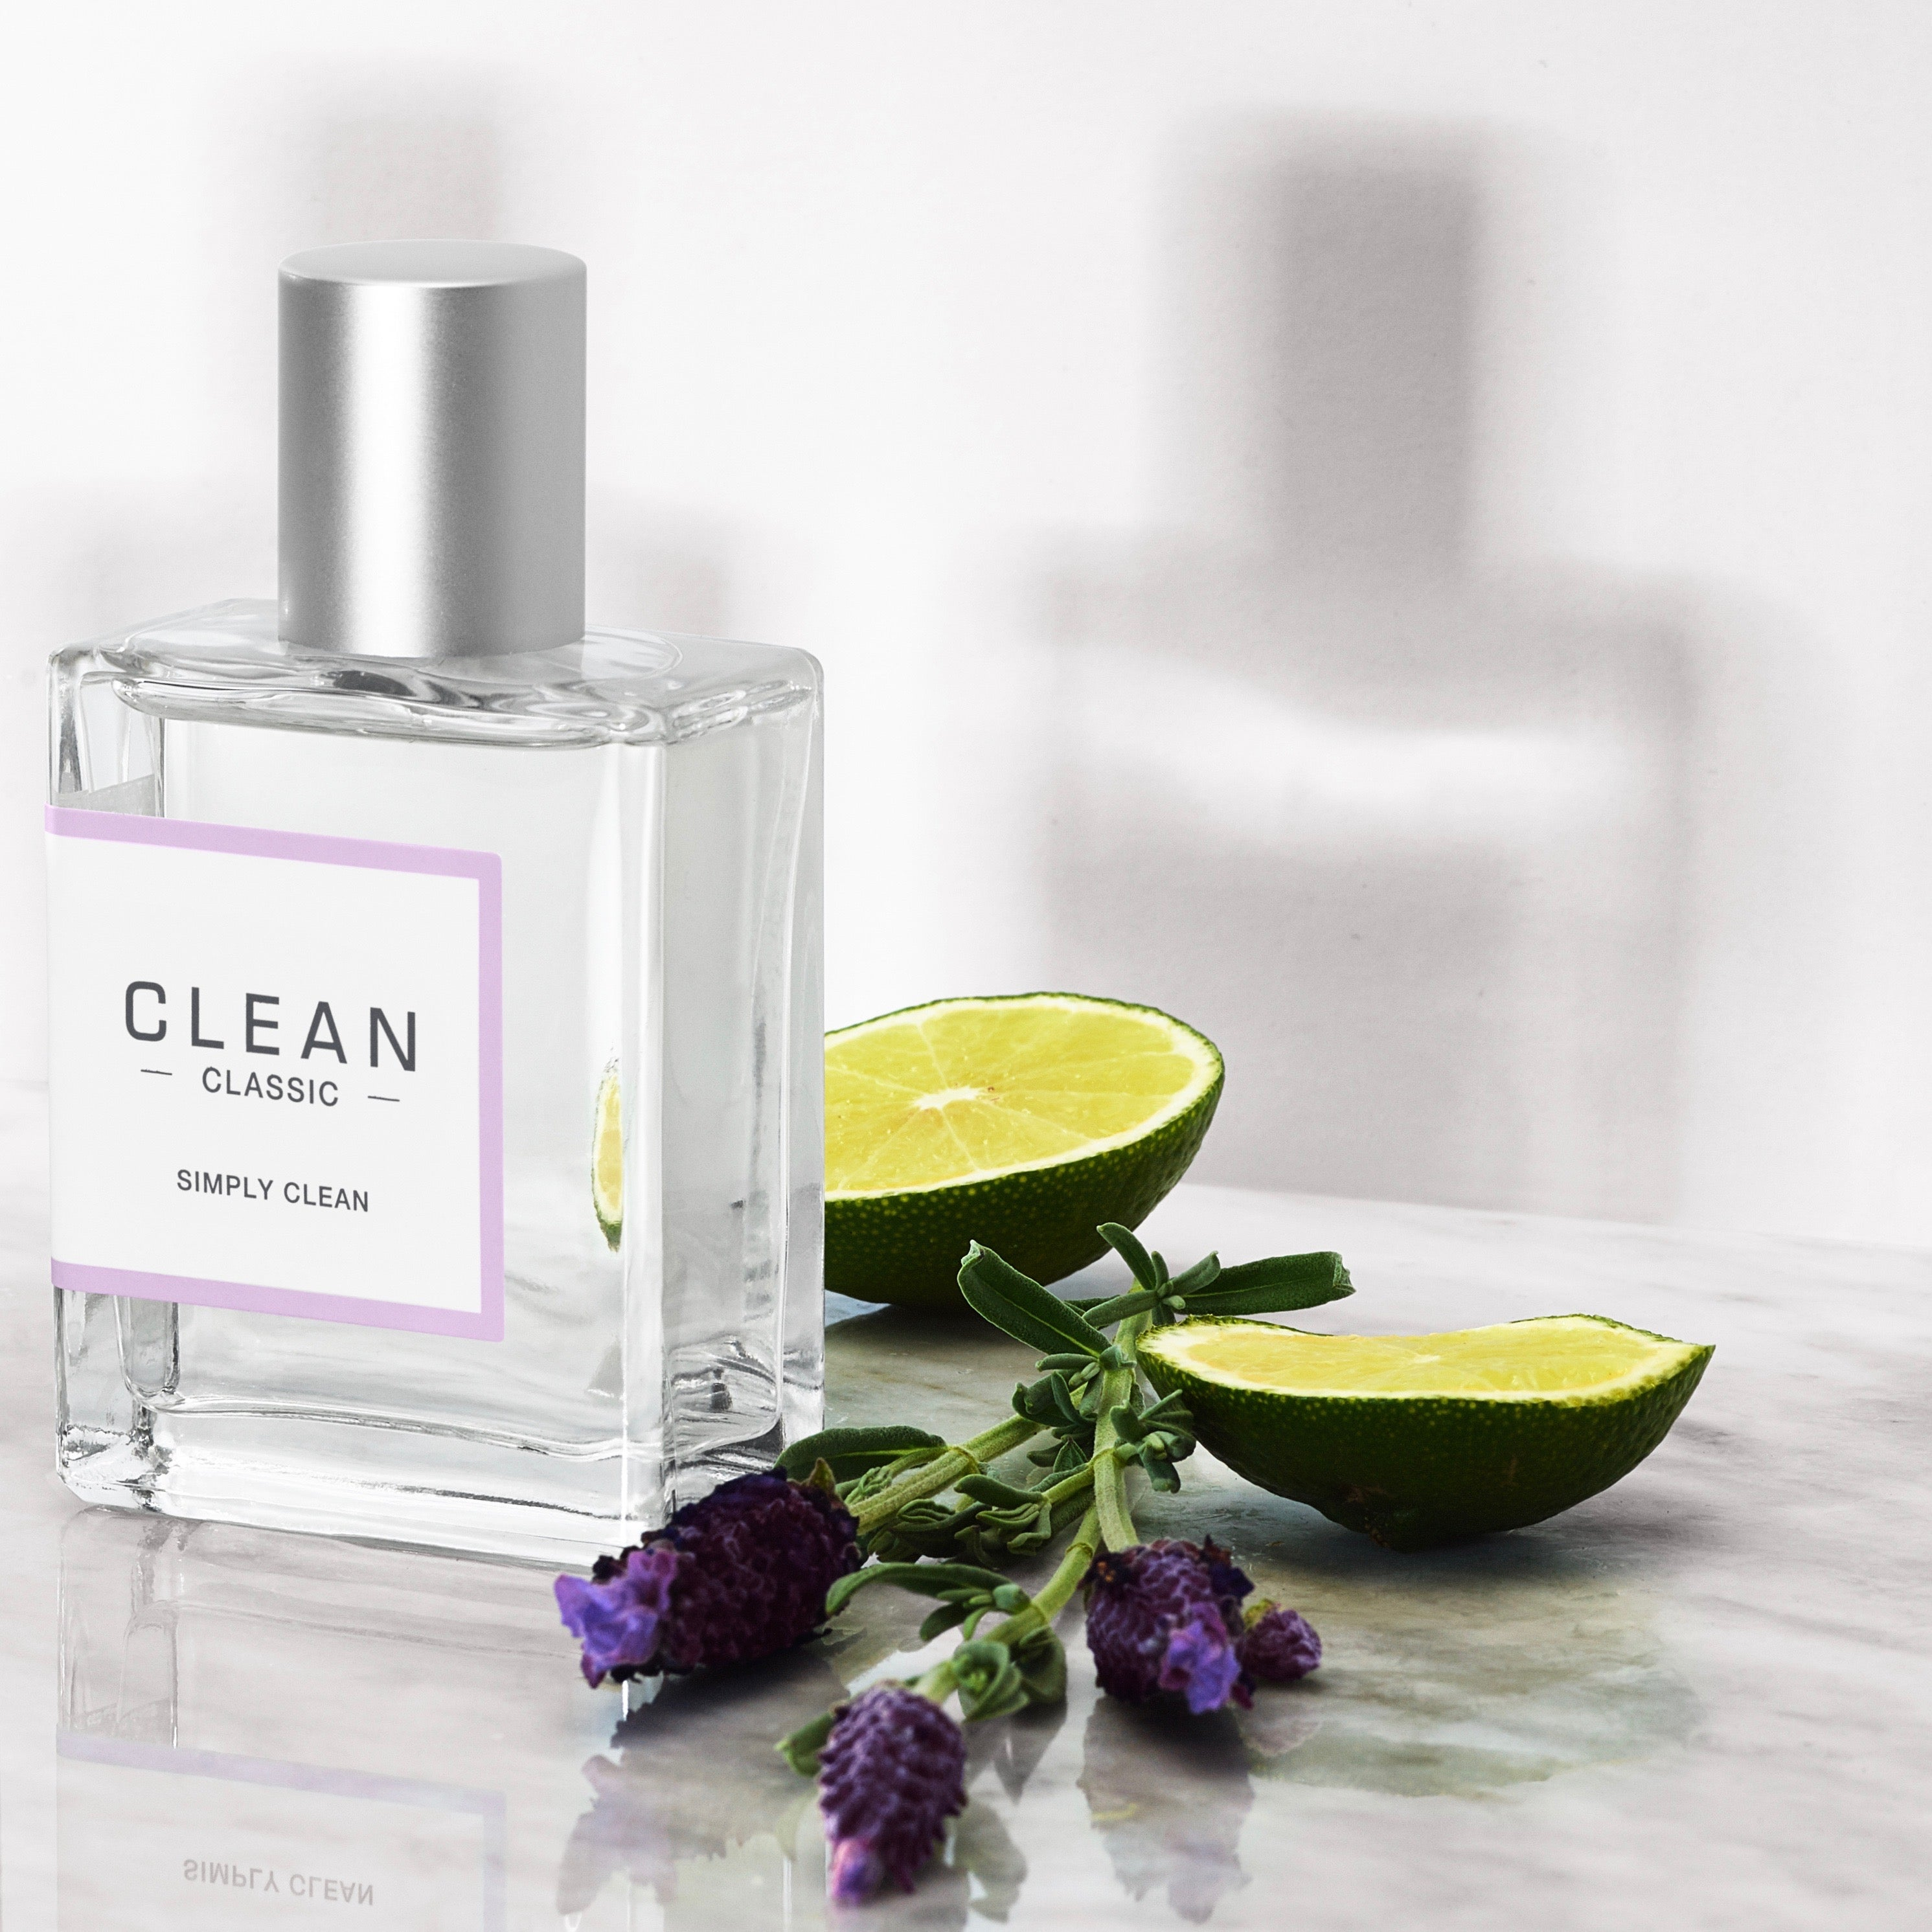 CLEAN CLASSIC SIMPLY CLEAN 60ML WITH INGREDIENTS.jpeg